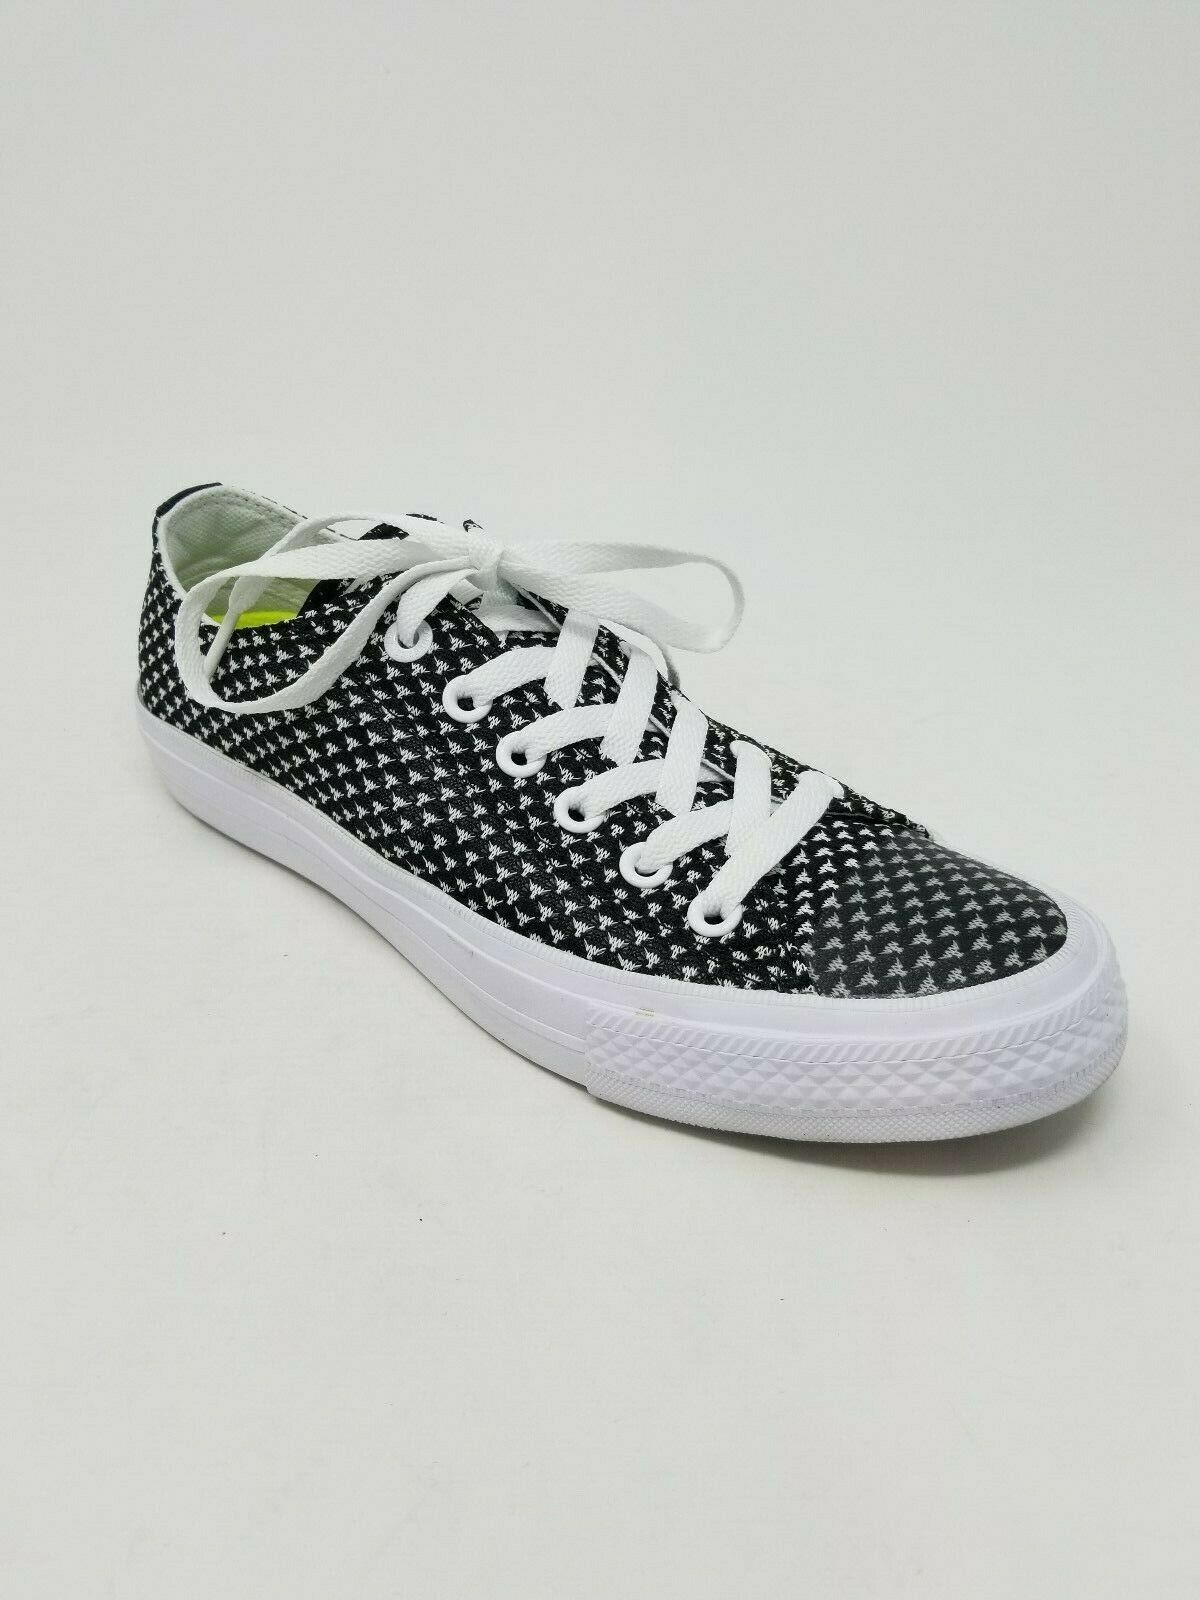 1200 Converse Women's Chuck Taylor All Star Ii Ox Ox Ox  shoes, Black White Size 6.5M 6f63c1